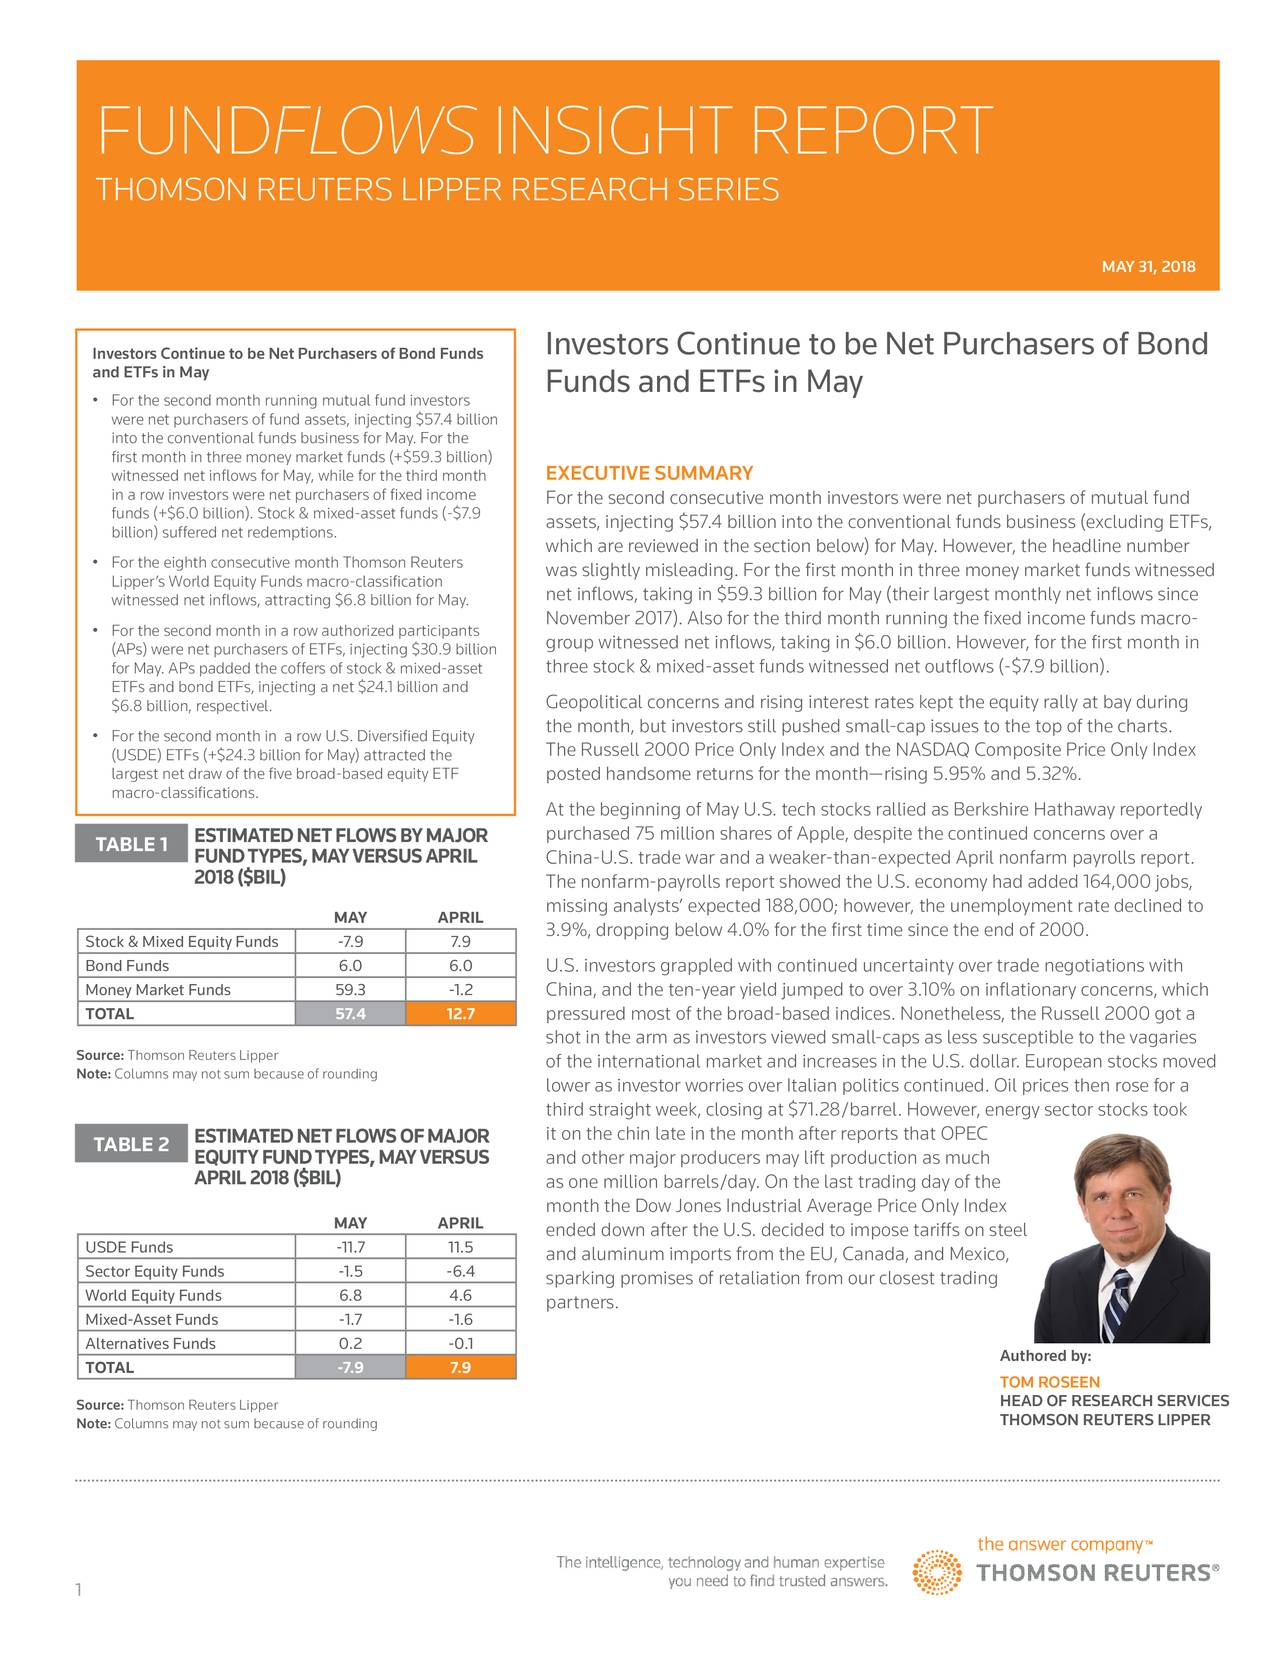 THOMSON REUTERS LIPPER RESEARCH SERIES MAY 31, 2018 Investors Continue to be Net Purchasers of Bond Funds Investors Continue to be Net Purchasers of Bond and ETFs in May Funds and ETFs in May • For the second month running mutual fund investors were net purchasers of fund assets, injecting $57.4 billion into the conventional funds business for May. For the first month in three money market funds (+$59.3 billion) witnessed net inflows for May, while for the third monthECUTIVE SUMMARY in a row investors were net purchasers of fixed incomeFor the second consecutive month investors were net purchasers of mutual fund funds (+$6.0 billion). Stock & mixed-asset funds (-$7.assets, injecting $57.4 billion into the conventional funds business (excluding ETFs, billion) suffered net redemptions. which are reviewed in the section below) for May. However, the headline number • For the eighth consecutive month Thomson Reuters was slightly misleading. For the first month in three money market funds witnessed Lipper's World Equity Funds macro-classification net inflows, taking in $59.3 billion for May (their largest monthly net inflows since witnessed net inflows, attracting $6.8 billion for May. • For the second month in a row authorized participants November 2017). Also for the third month running the fixed income funds macro- (APs) were net purchasers of ETFs, injecting $30.9 billionp witnessed net inflows, taking in $6.0 billion. However, for the first month in for May. APs padded the coffers of stock & mixed-assetthree stock & mixed-asset funds witnessed net outflows (-$7.9 billion). ETFs and bond ETFs, injecting a net $24.1 billion and $6.8 billion, respectivel. Geopolitical concerns and rising interest rates kept the equity rally at bay during the month, but investors still pushed small-cap issues to the top of the charts. • For the second month in a row U.S. Diversified Equity (USDE) ETFs (+$24.3 billion for May) attracted the The Russell 2000 Price Only Index and the NASDAQ